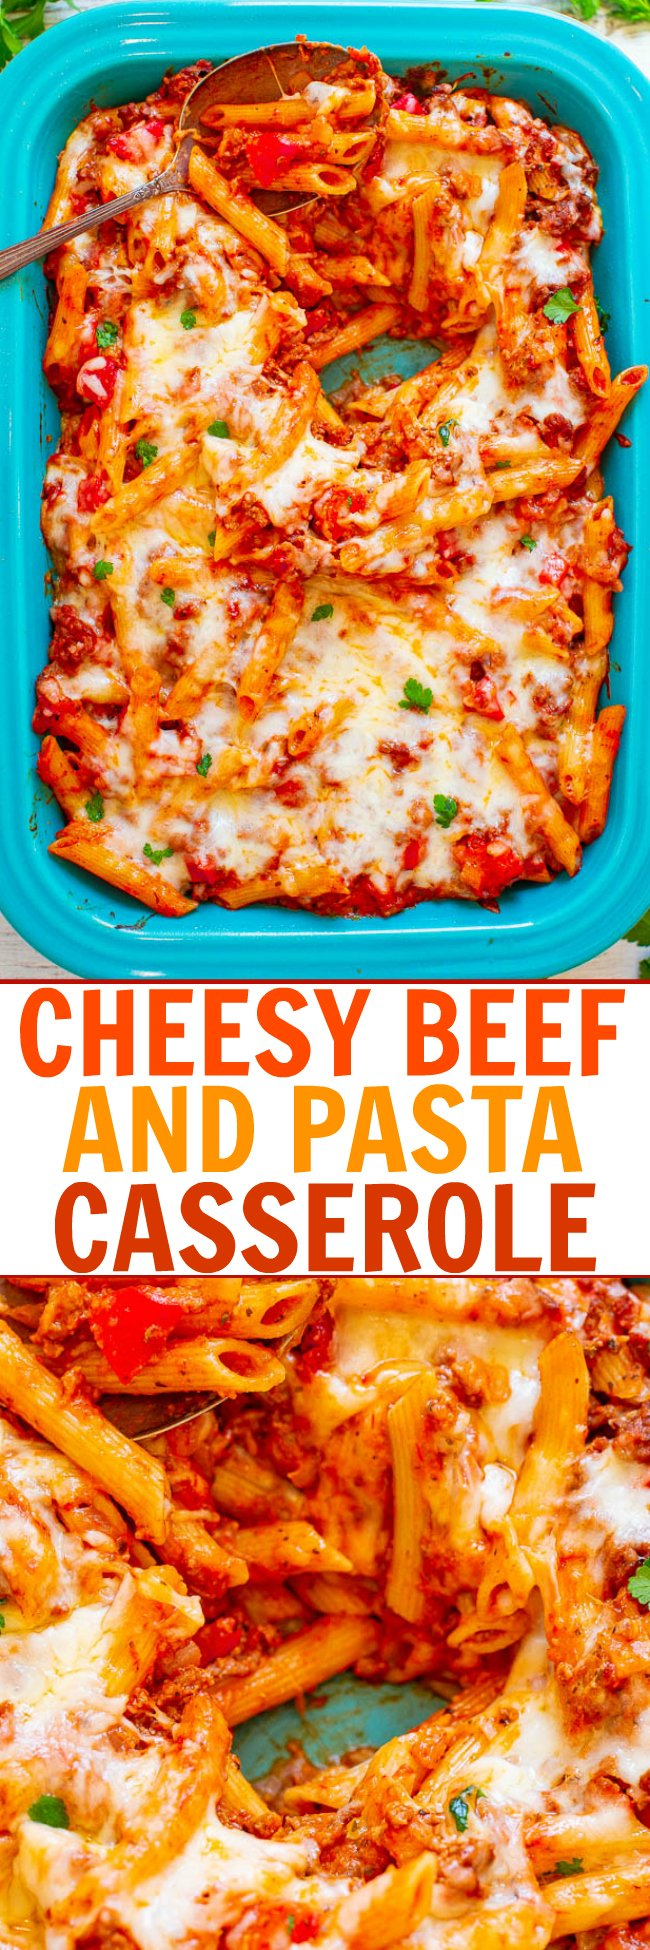 Cheesy Ground Beef Pasta Casserole — Hearty comfort food that's EASY and IRRESISTIBLE!! Cheesy pasta and beef coated in marinara sauce and topped with more CHEESE! Makes planned leftovers and is freezer-friendly!!